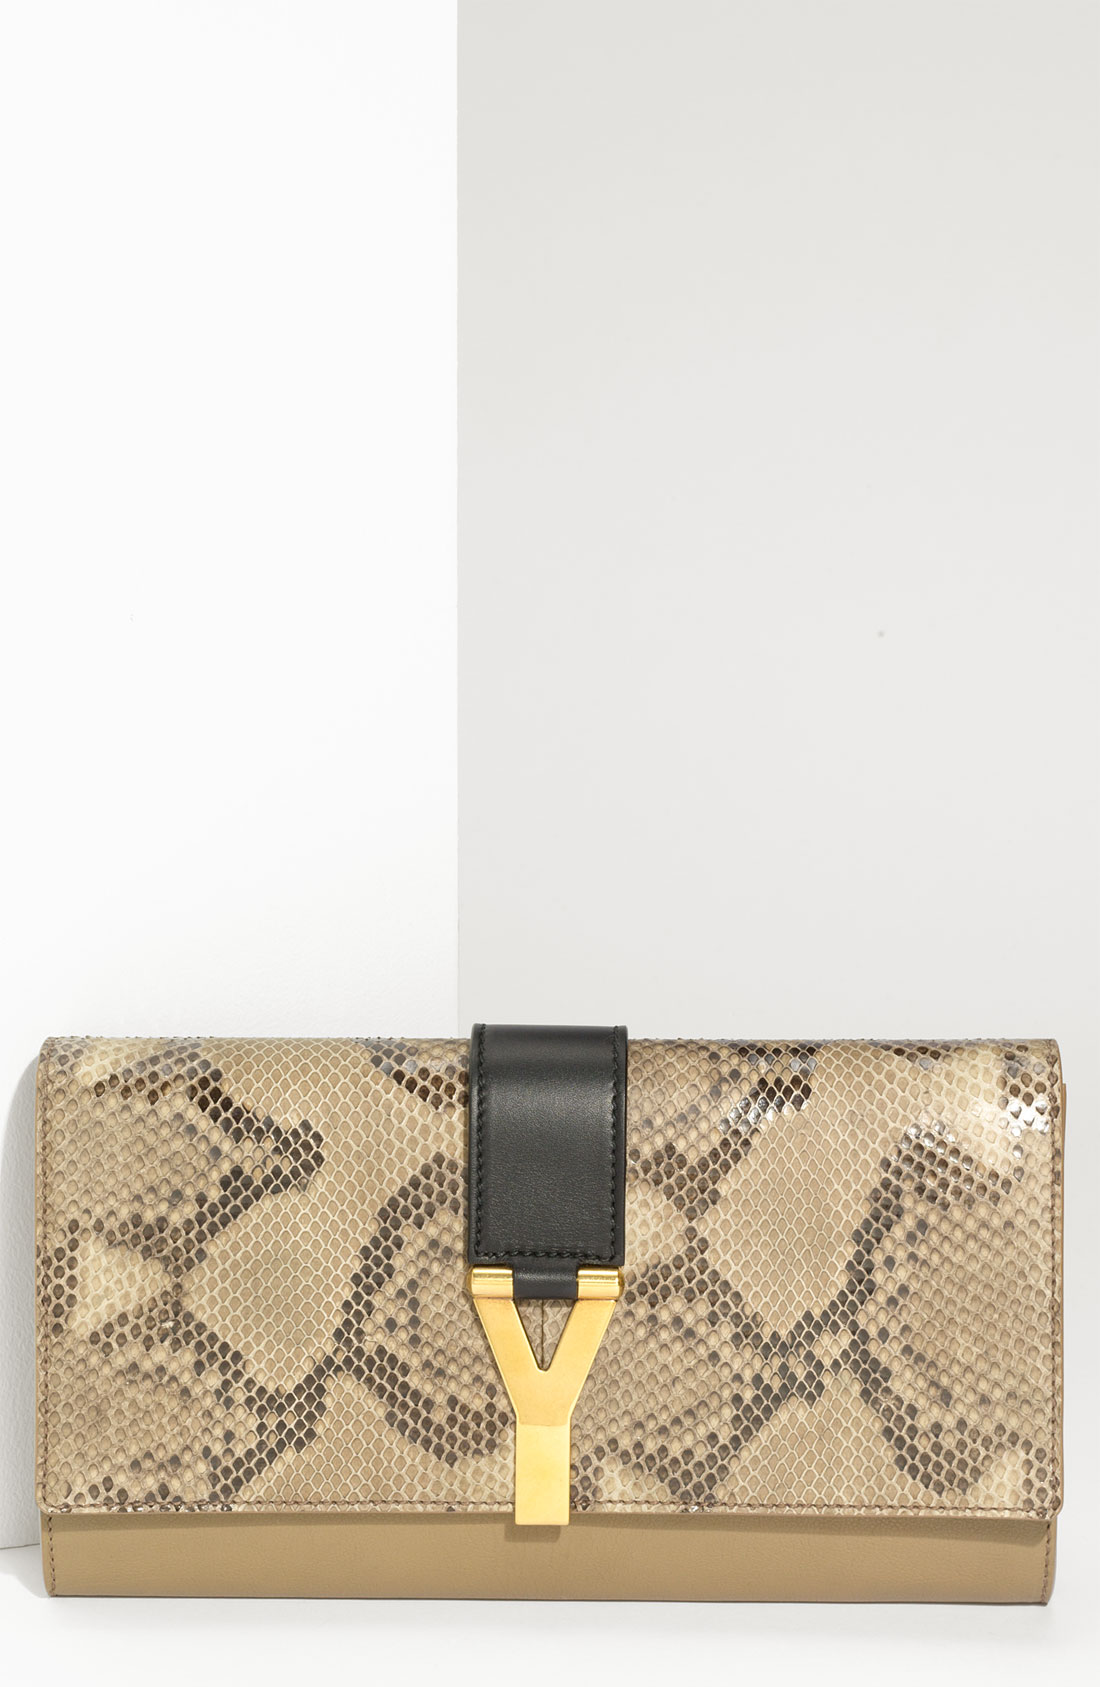 ysl cabas chyc for sale - yves saint laurent python chyc clutch, blue yves saint laurent bag